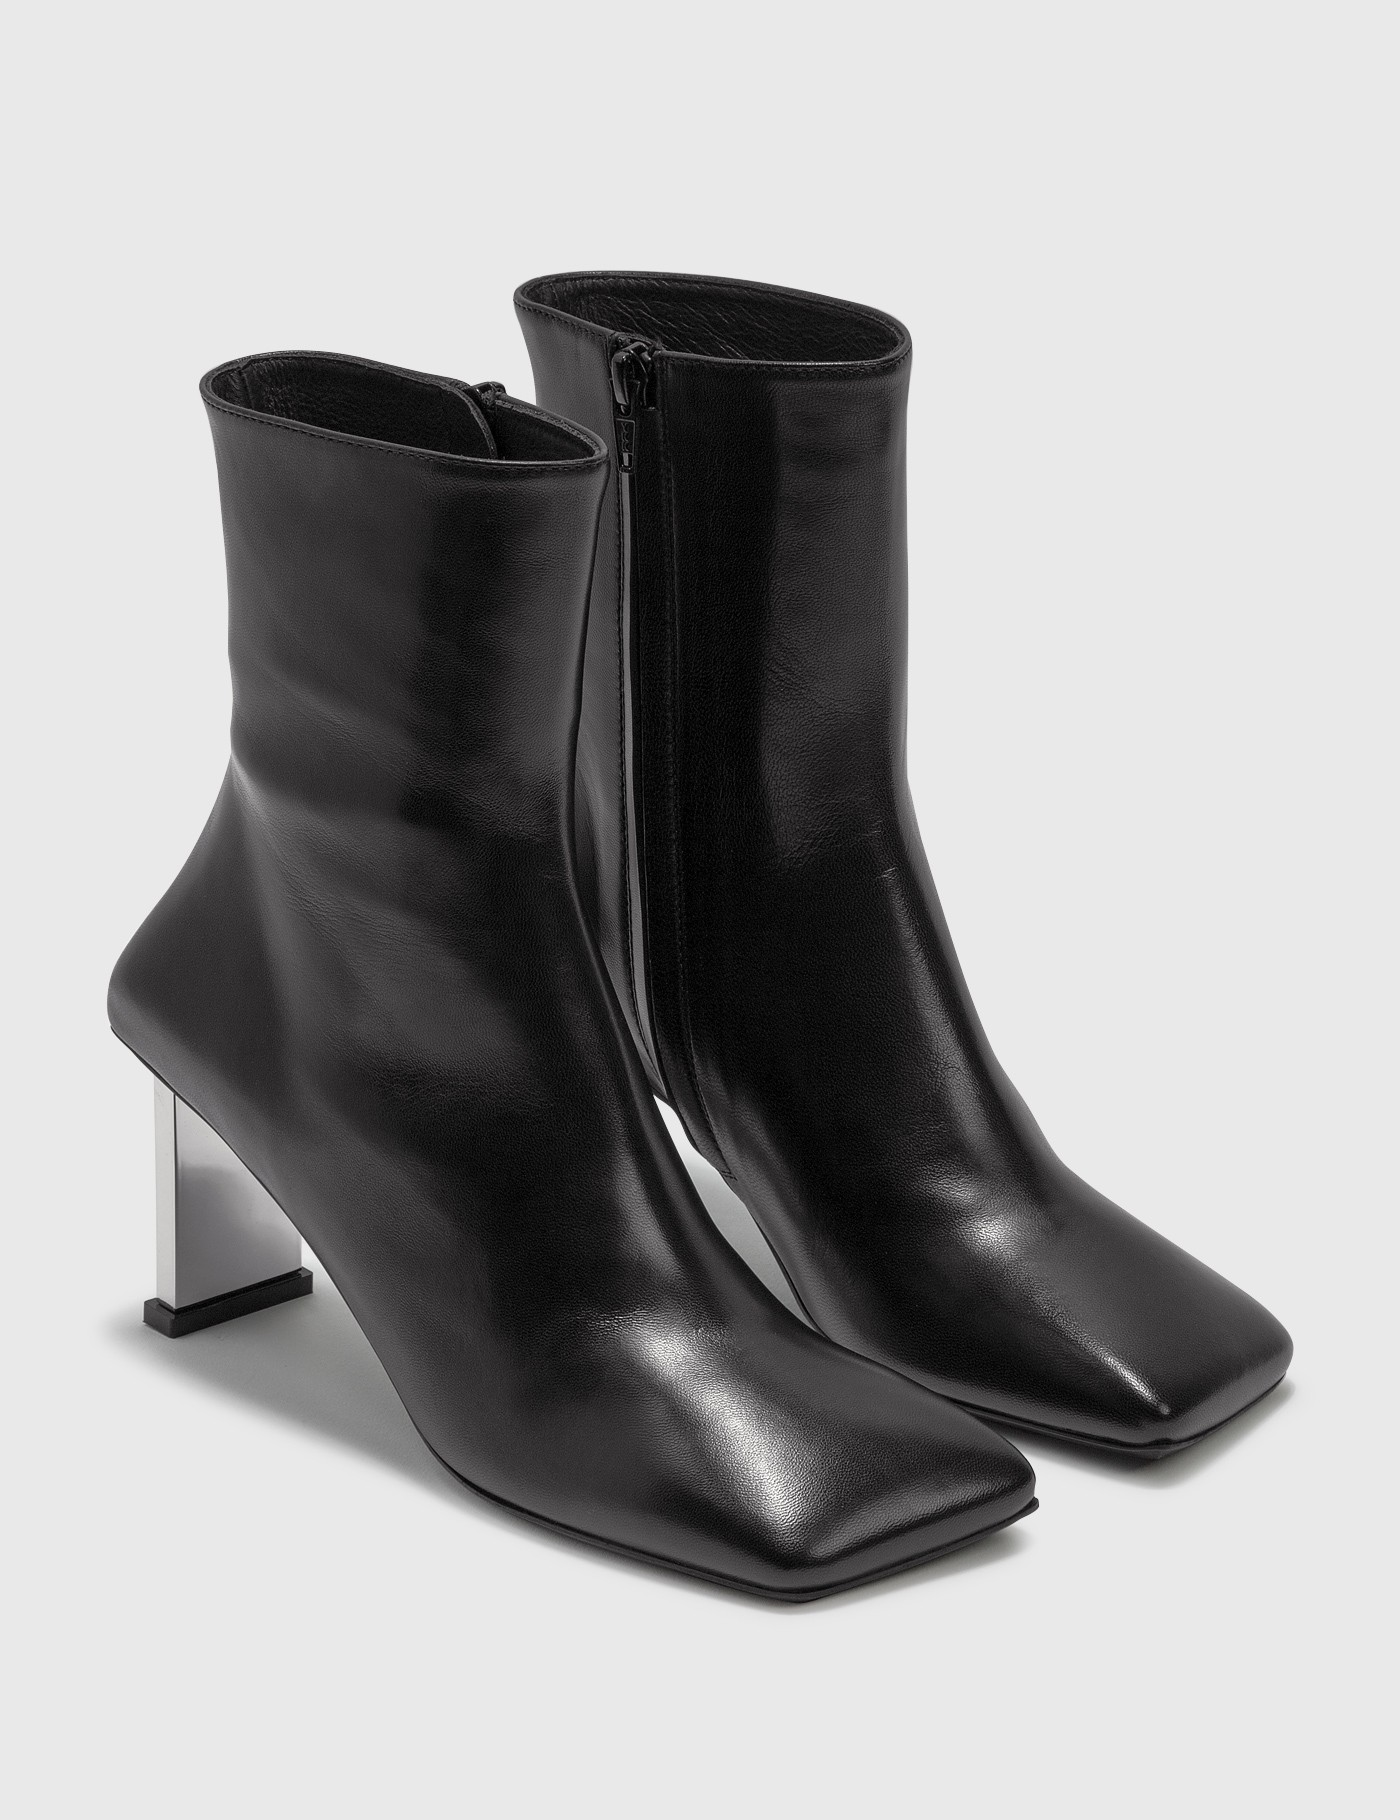 Misbhv METAL BAR SQUARE ANKLE BOOTS